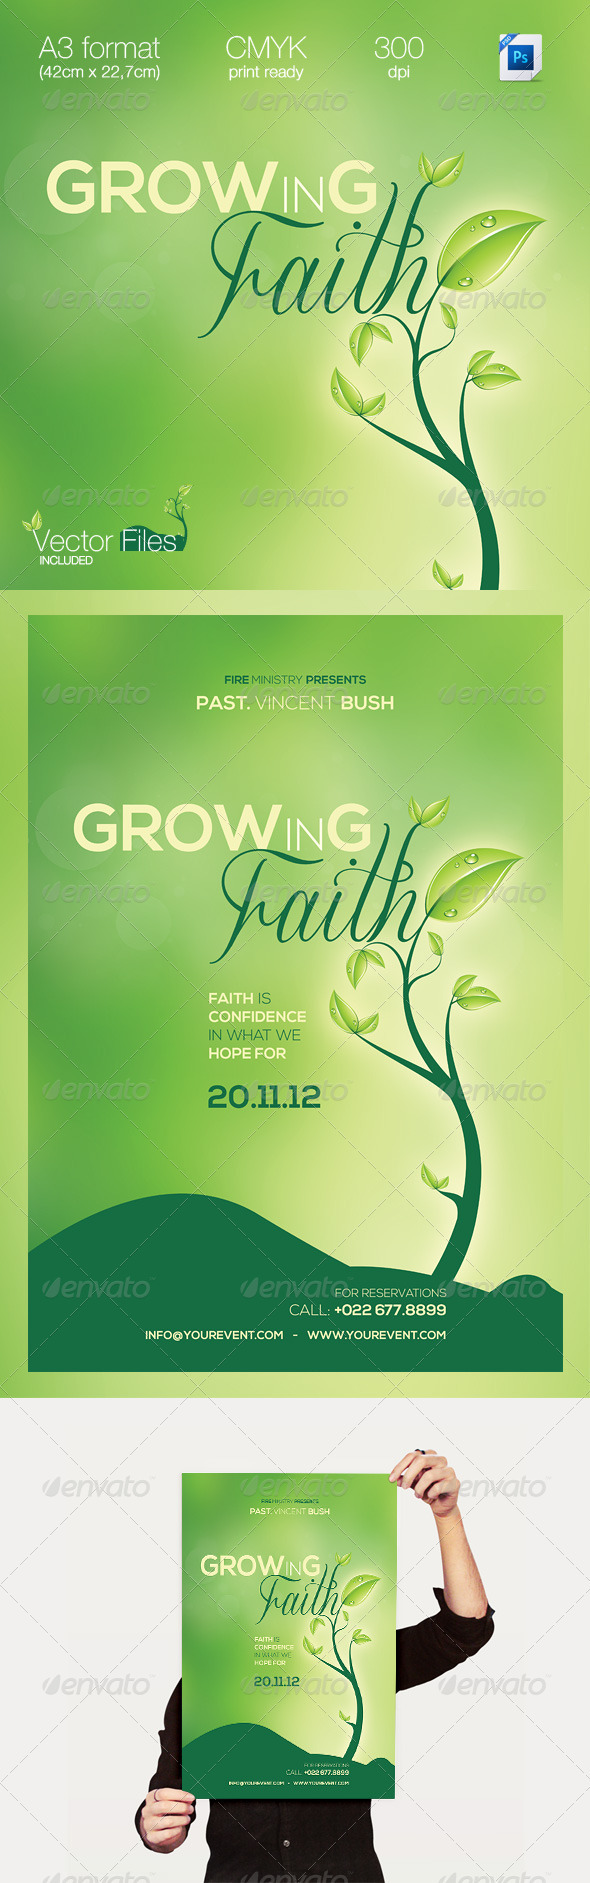 GrowINg Faith/Green | Multipurpose A3 Flyer - Church Flyers